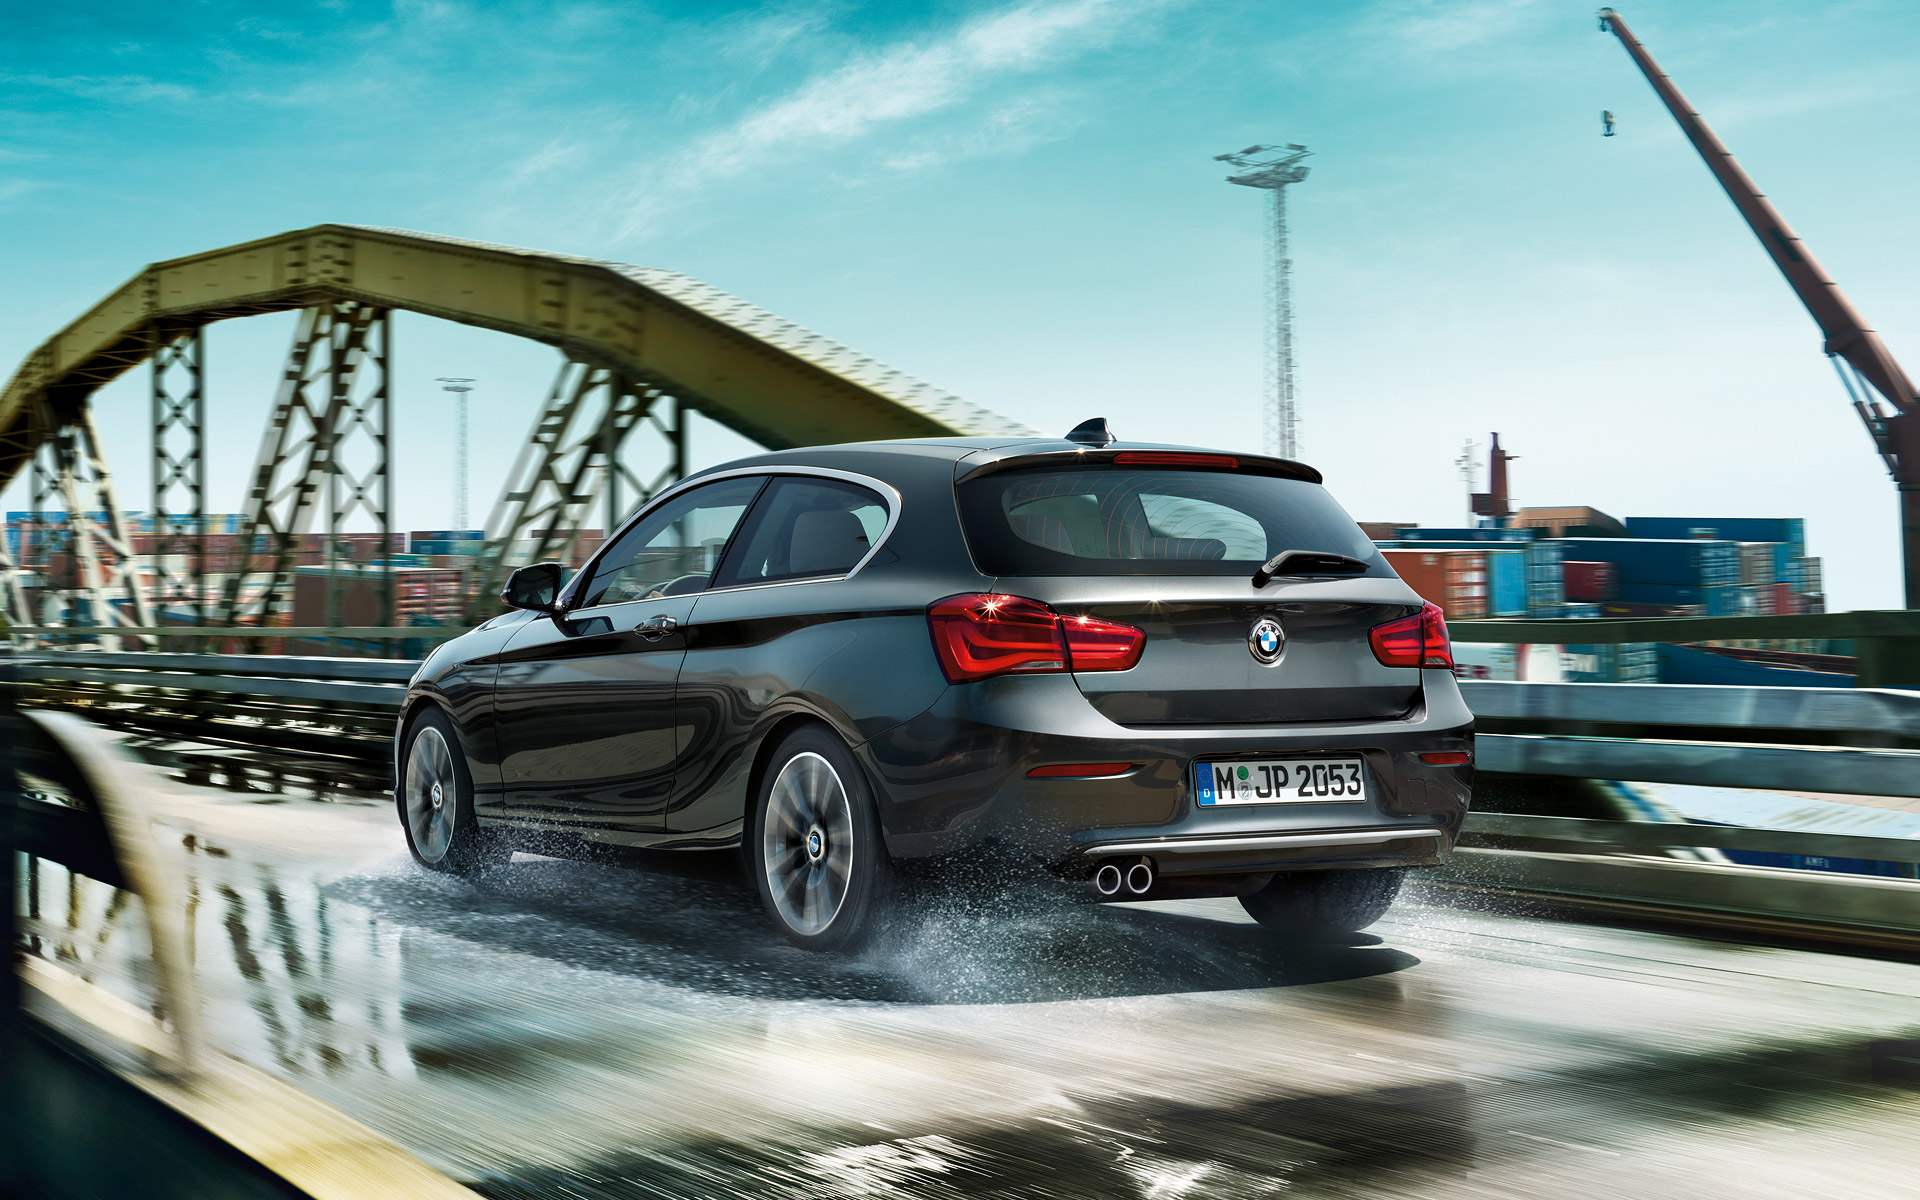 bmw 1 series wallpaper 1920x1200 011